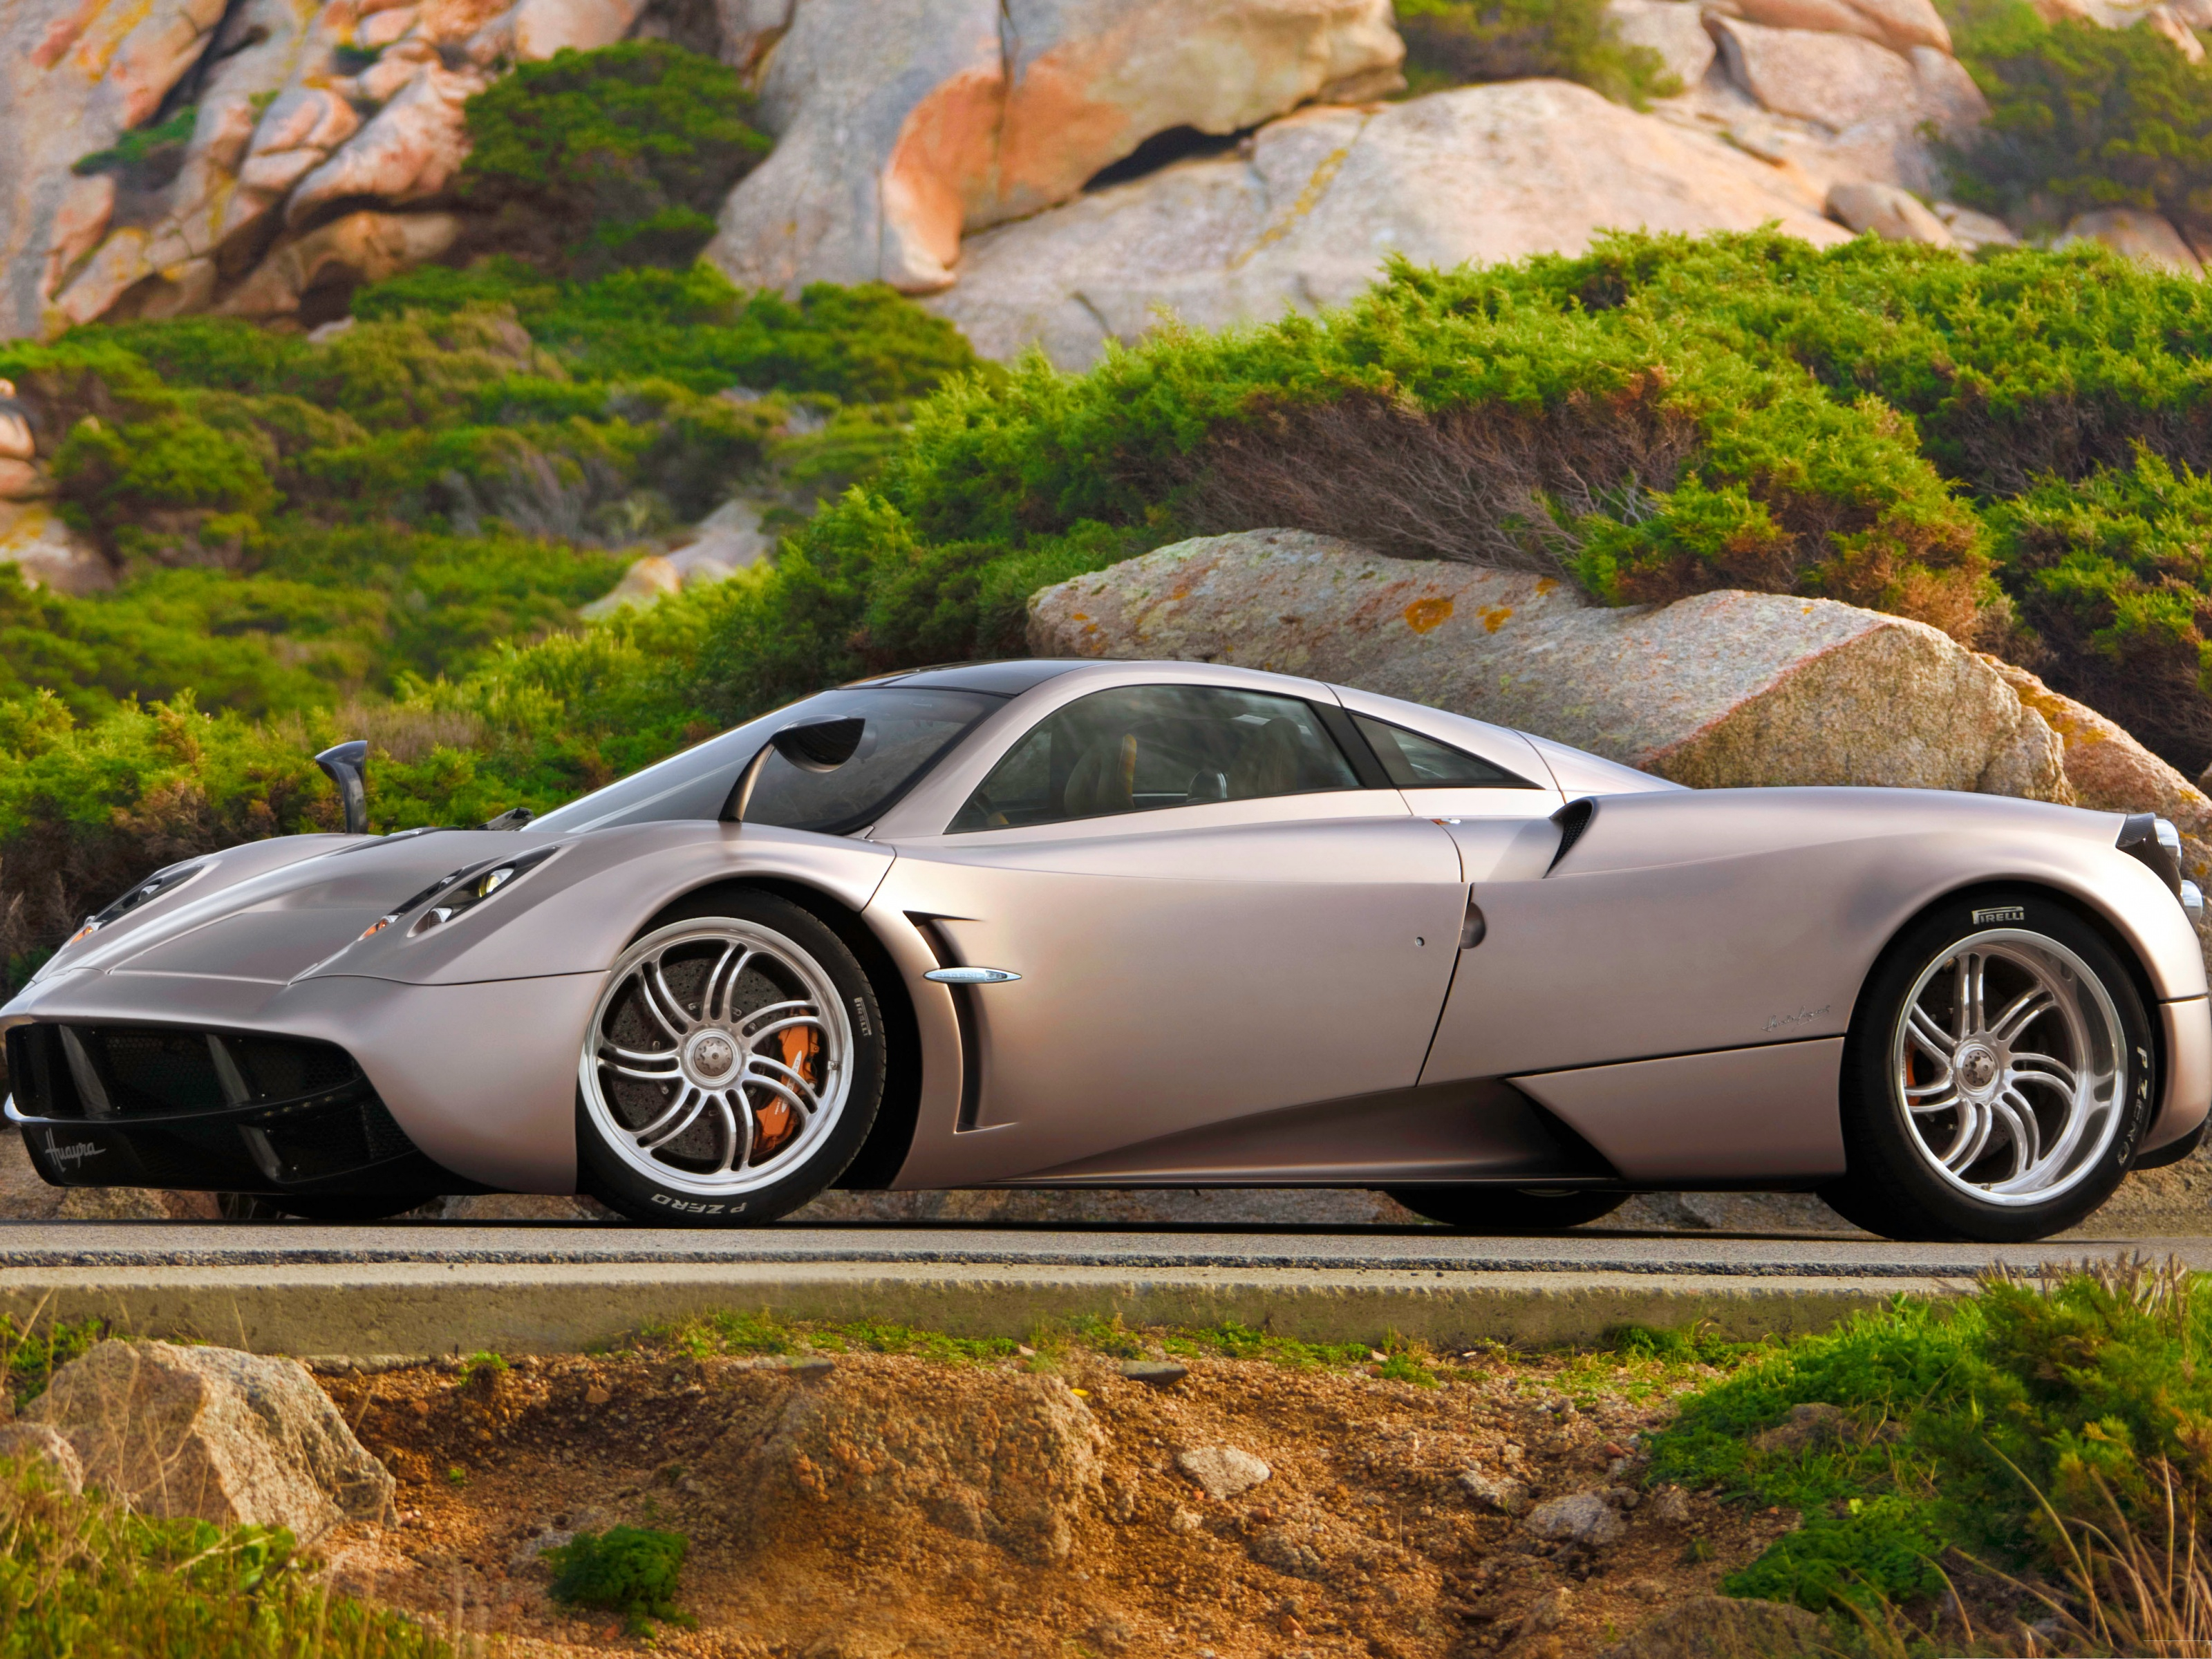 click to free download the wallpaper--Pagani Huayra and Nature Landscape, Super Car in Great Nature Scene 3200X2400 free wallpaper download